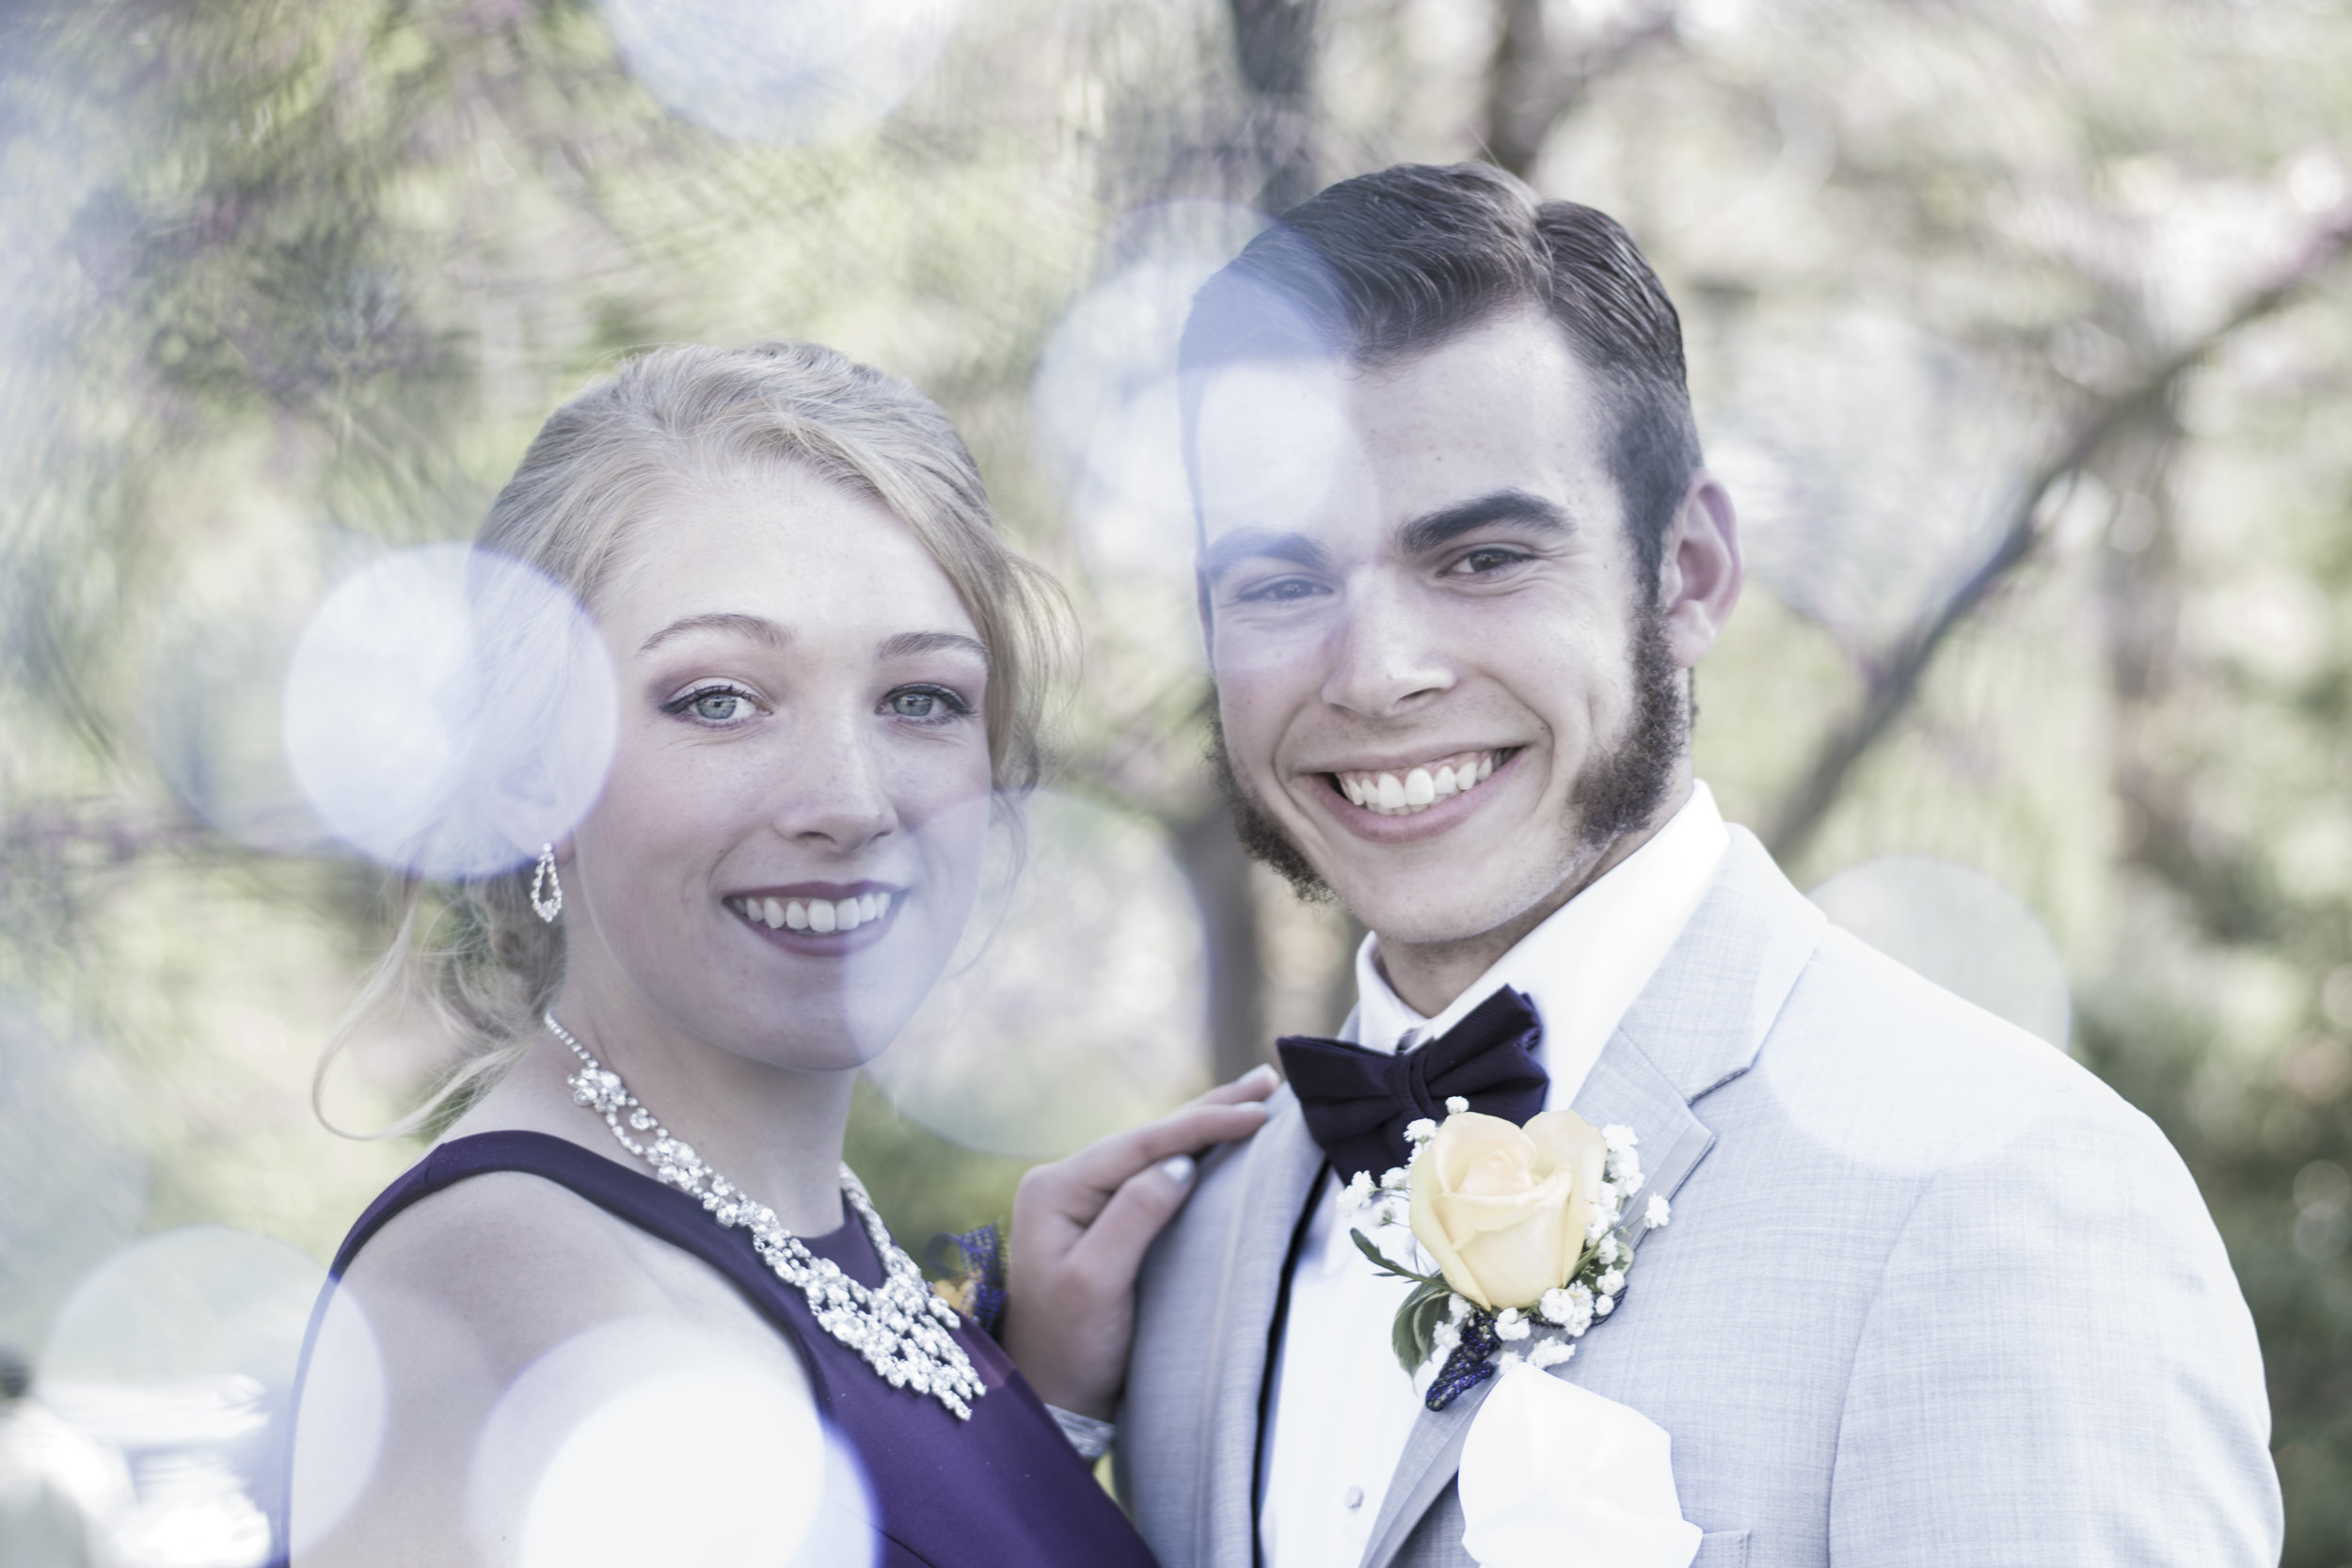 ethan-and-ally-prom-56-of-113_41890105272_o.jpg